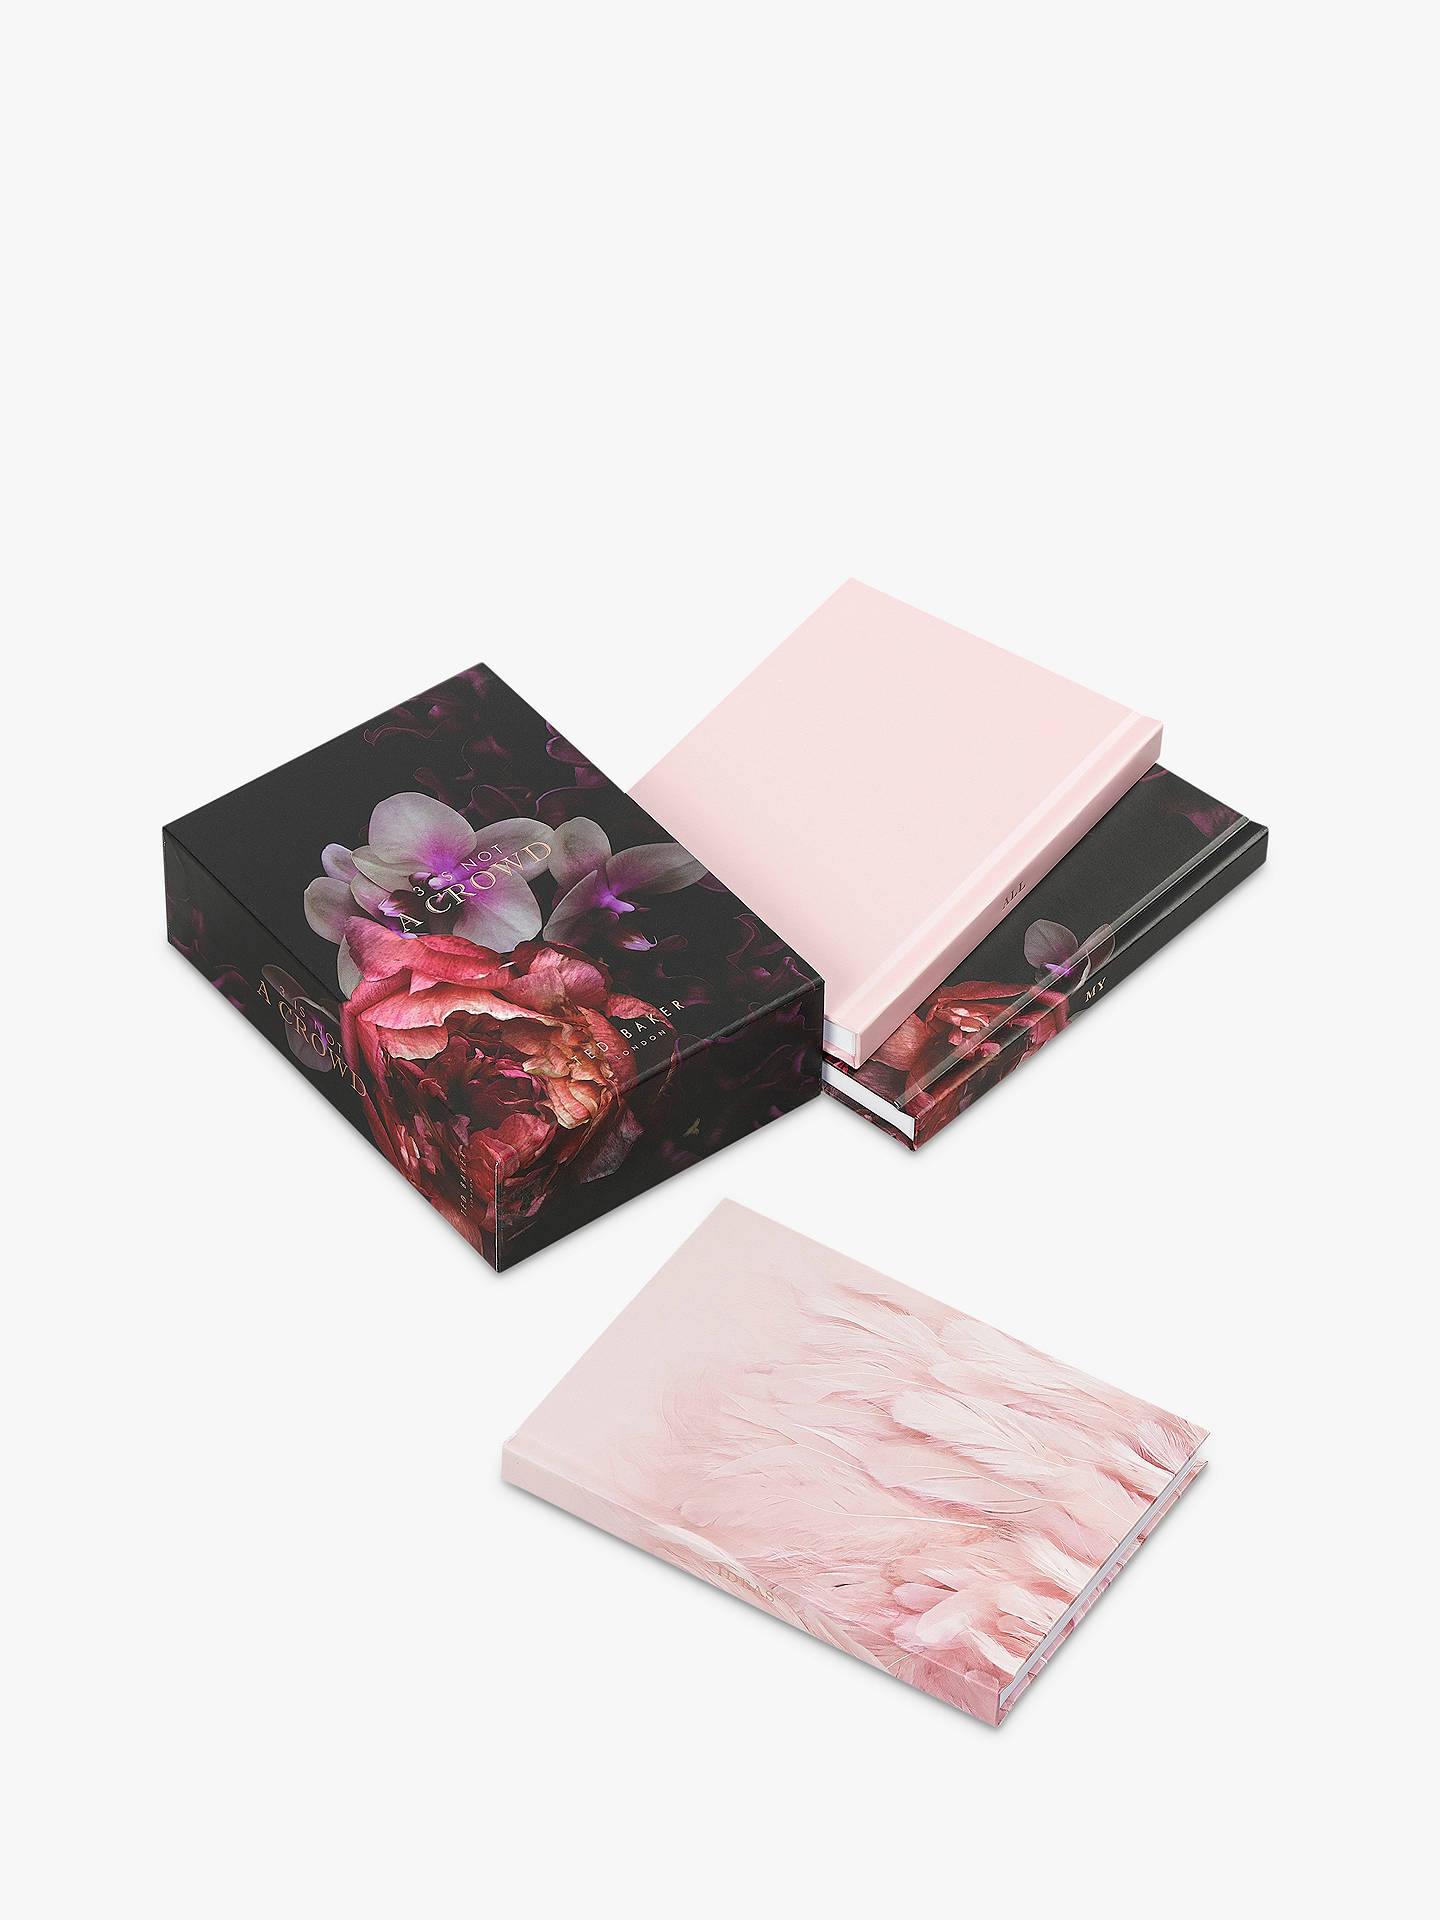 Buy Ted Baker Three's Not a Crowd Notebooks, Pack of 3 Online at johnlewis.com